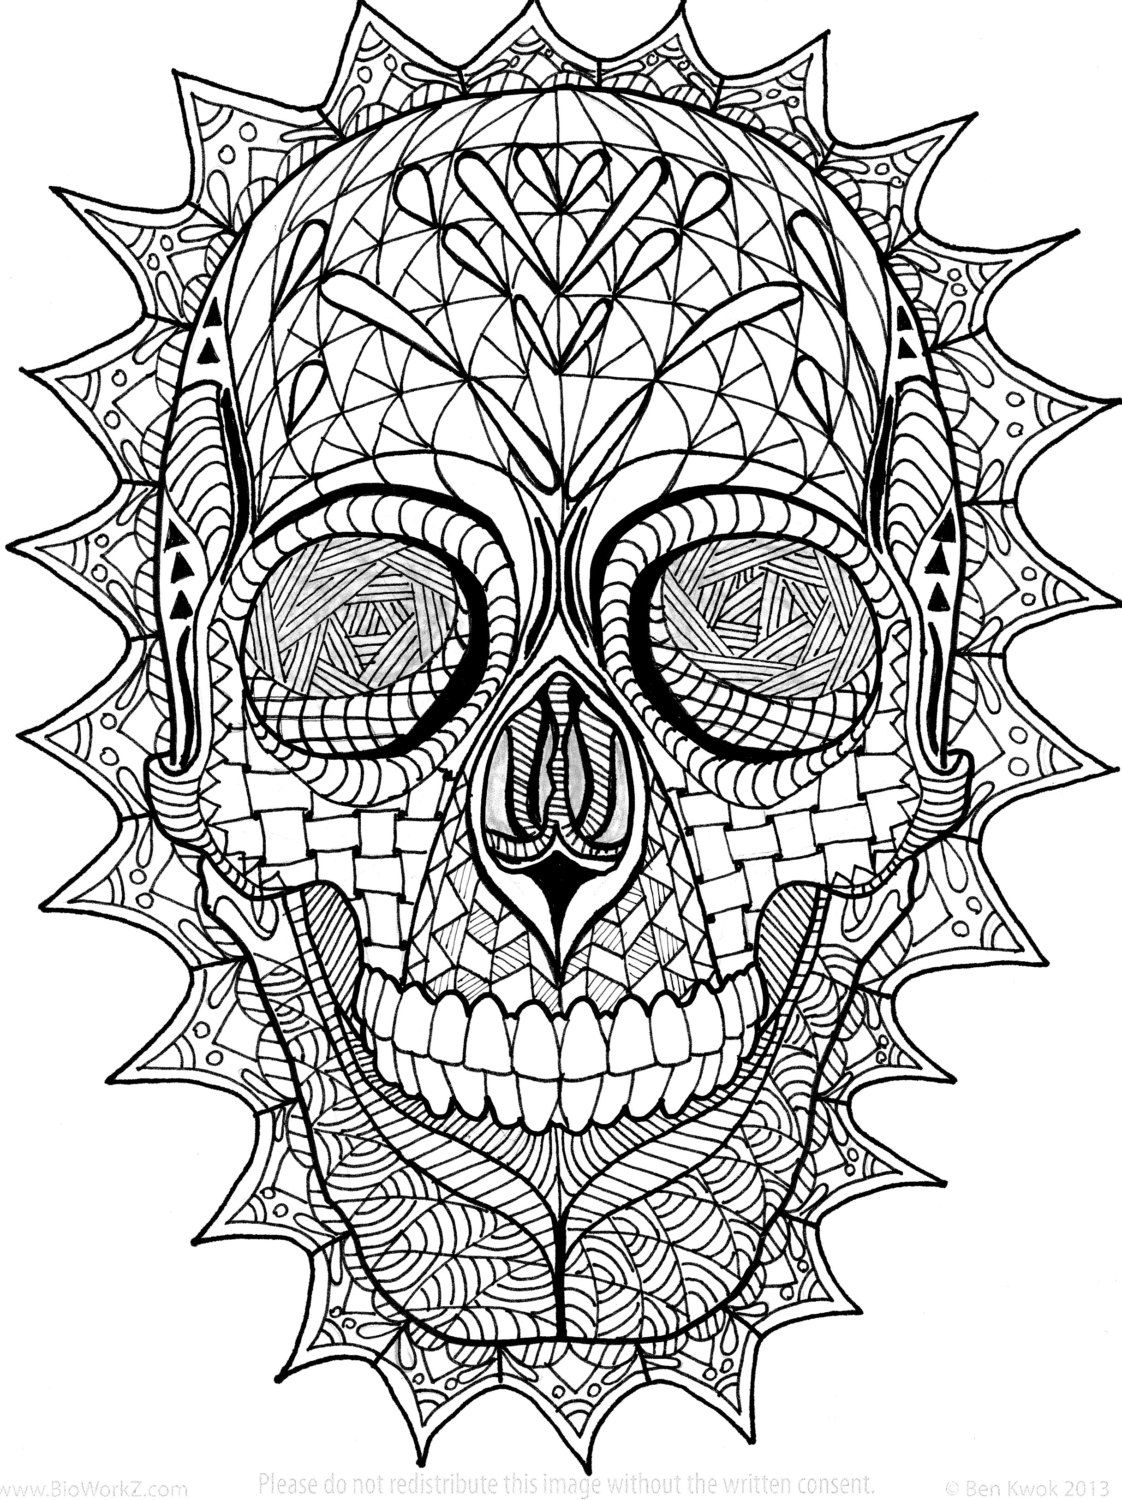 Sugar Skull Zentangle Coloring Page By Inspirationbyvicki